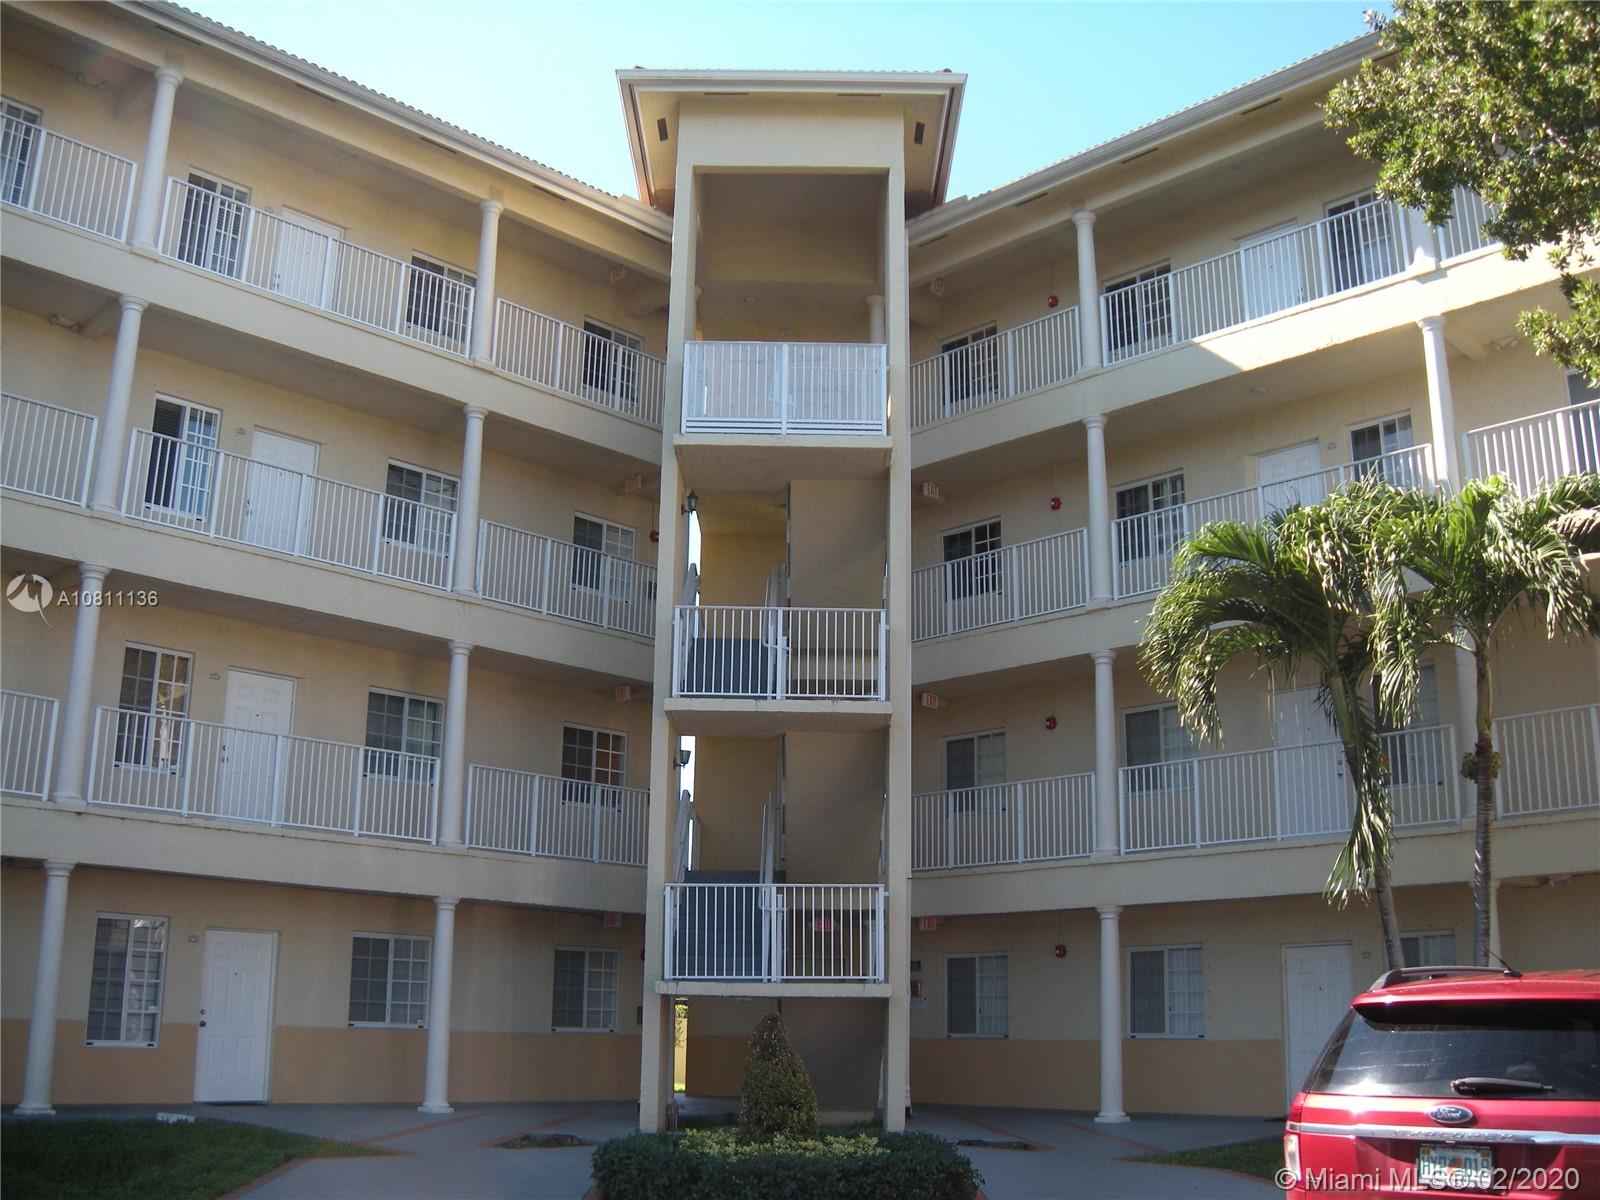 Elegant upper floor 3/2 condo located near the elevator in San Marco Villas in the Hialeah/Miami Lakes area in close proximity to I-75, Palmetto 826 and The Turnpike. Features include tiled floors, stackable washer/dryer, balcony, master bedroom with updated full bath and walk-in closet, crown moldings throughout, newer electric stainless steel appliances, nice light fixtures and paint job, dining area, very spacious with almost 1200 sq ft of living area, one assigned parking space and lots of guest parking, newer AC unit and more. No pets allowed, applicants are subject to association approval.